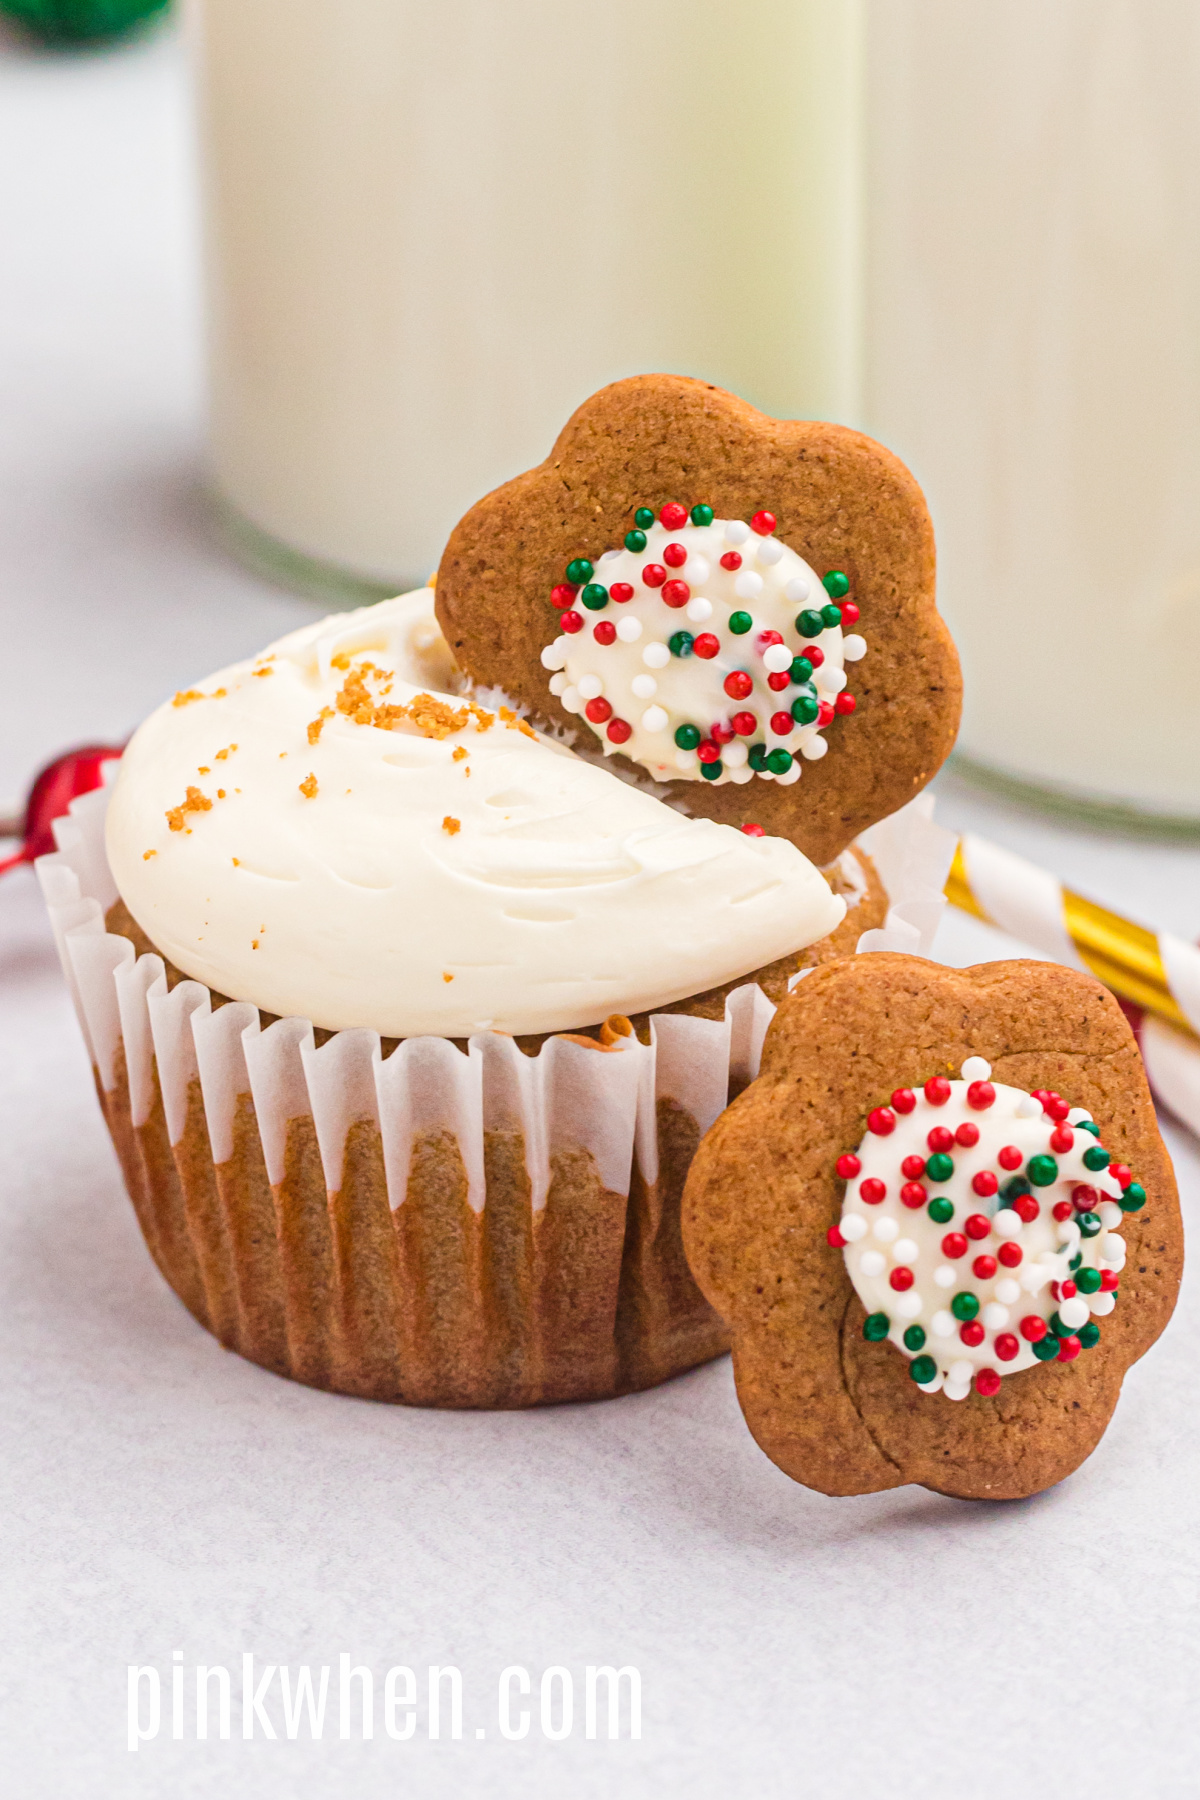 Gingerbread cupcakes with cream cheese frosting and topped with a cookie before serving.